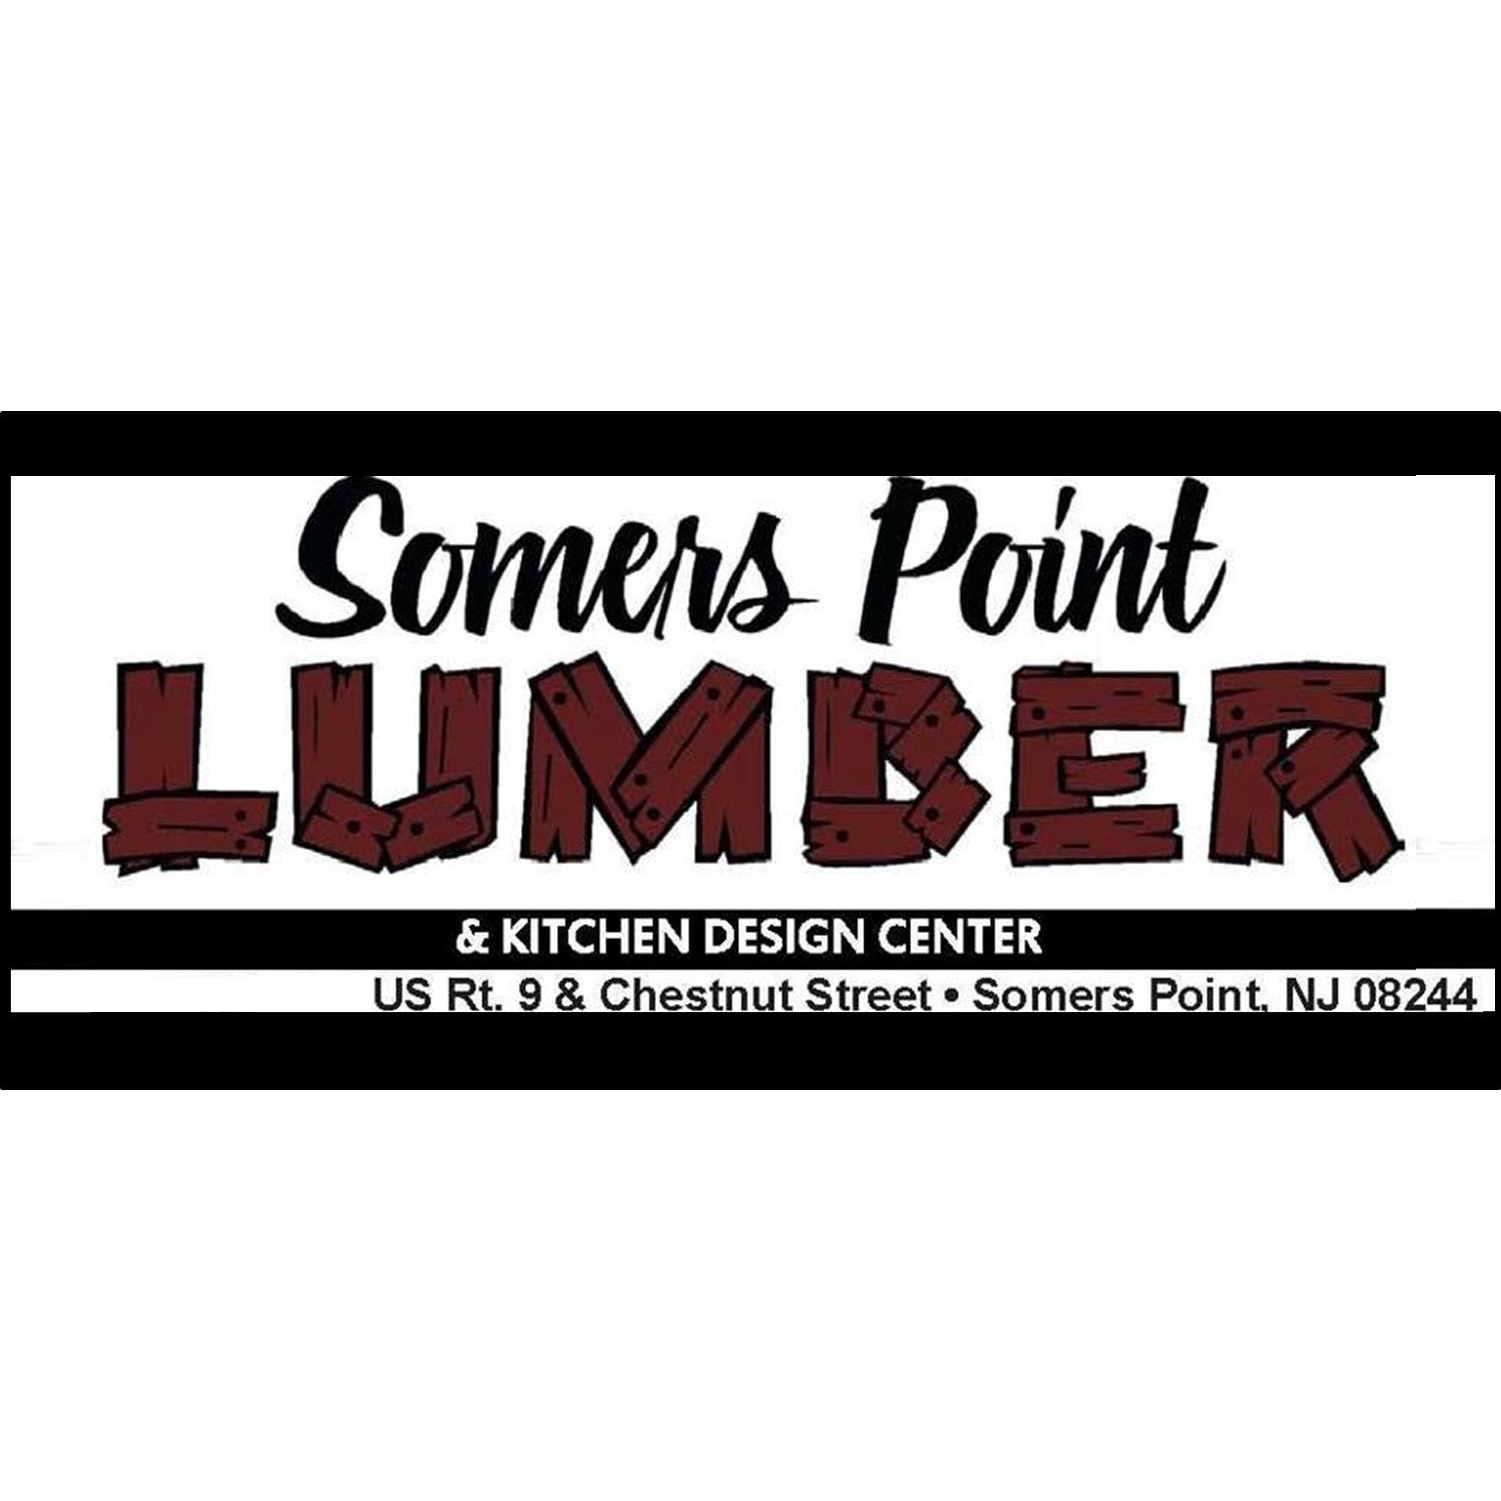 Somers Point Lumber & Home image 9